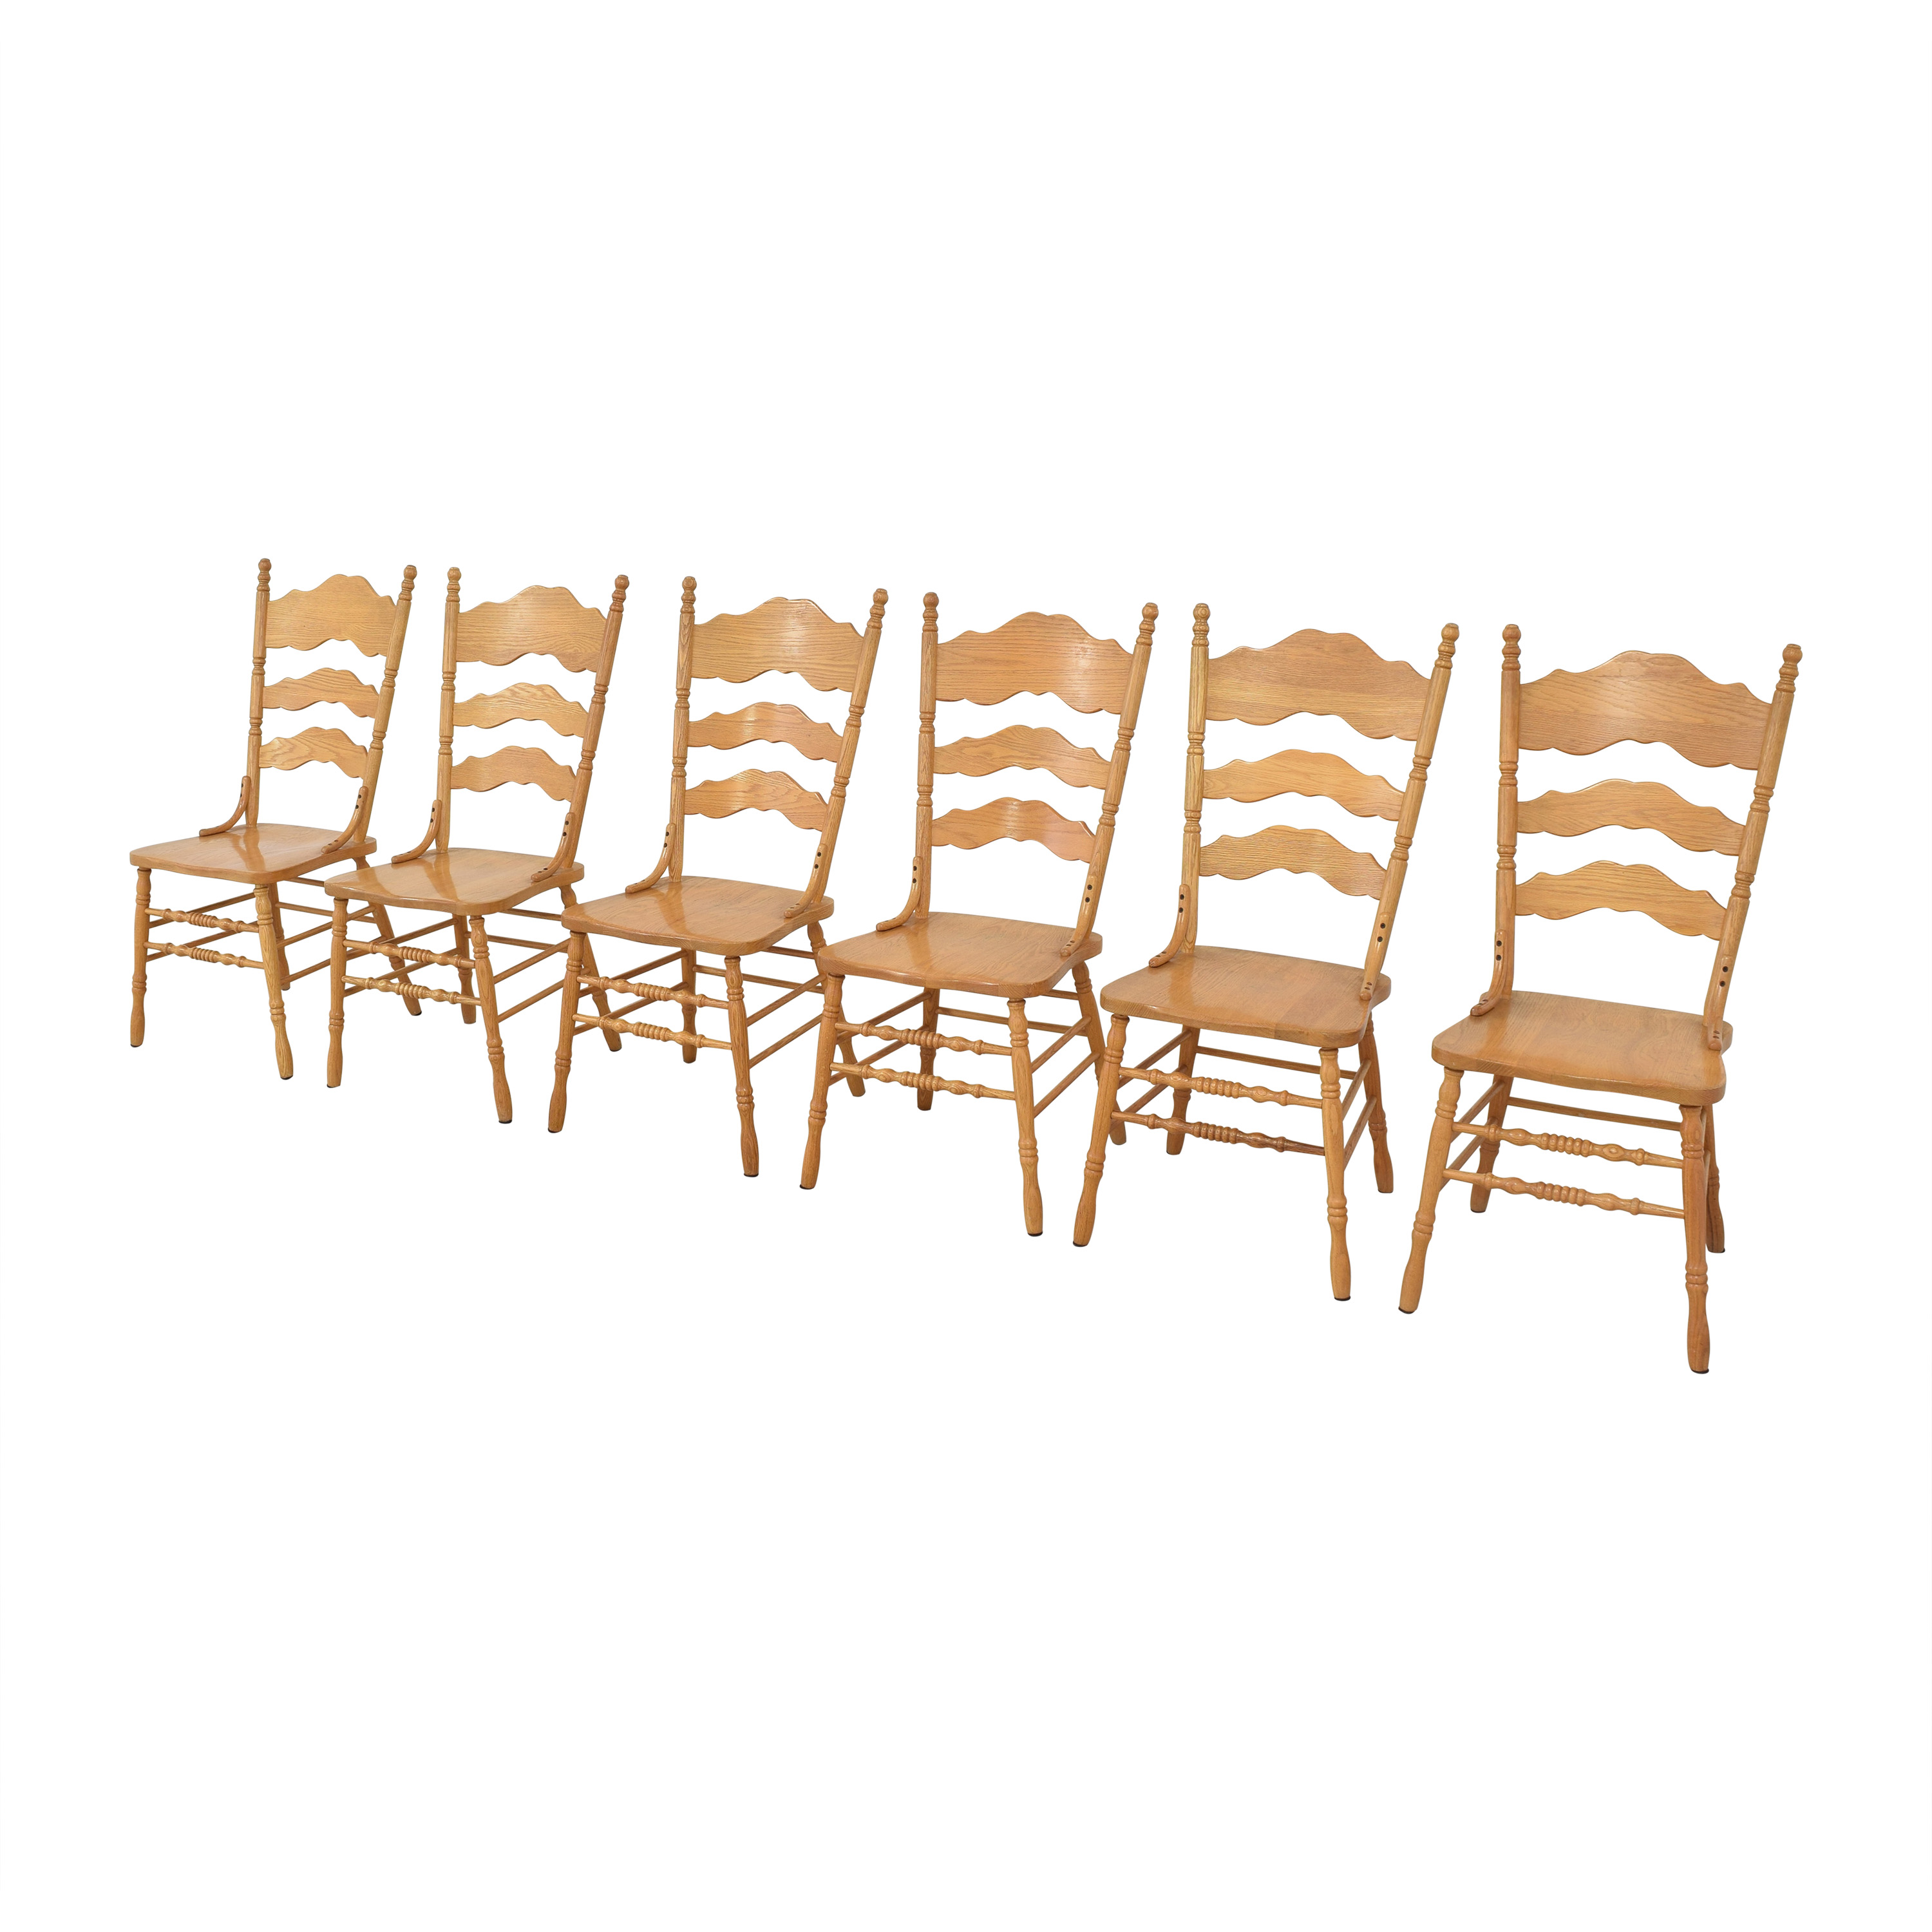 Shin-Lee Shin-Lee Ladder Back Dining Chairs coupon